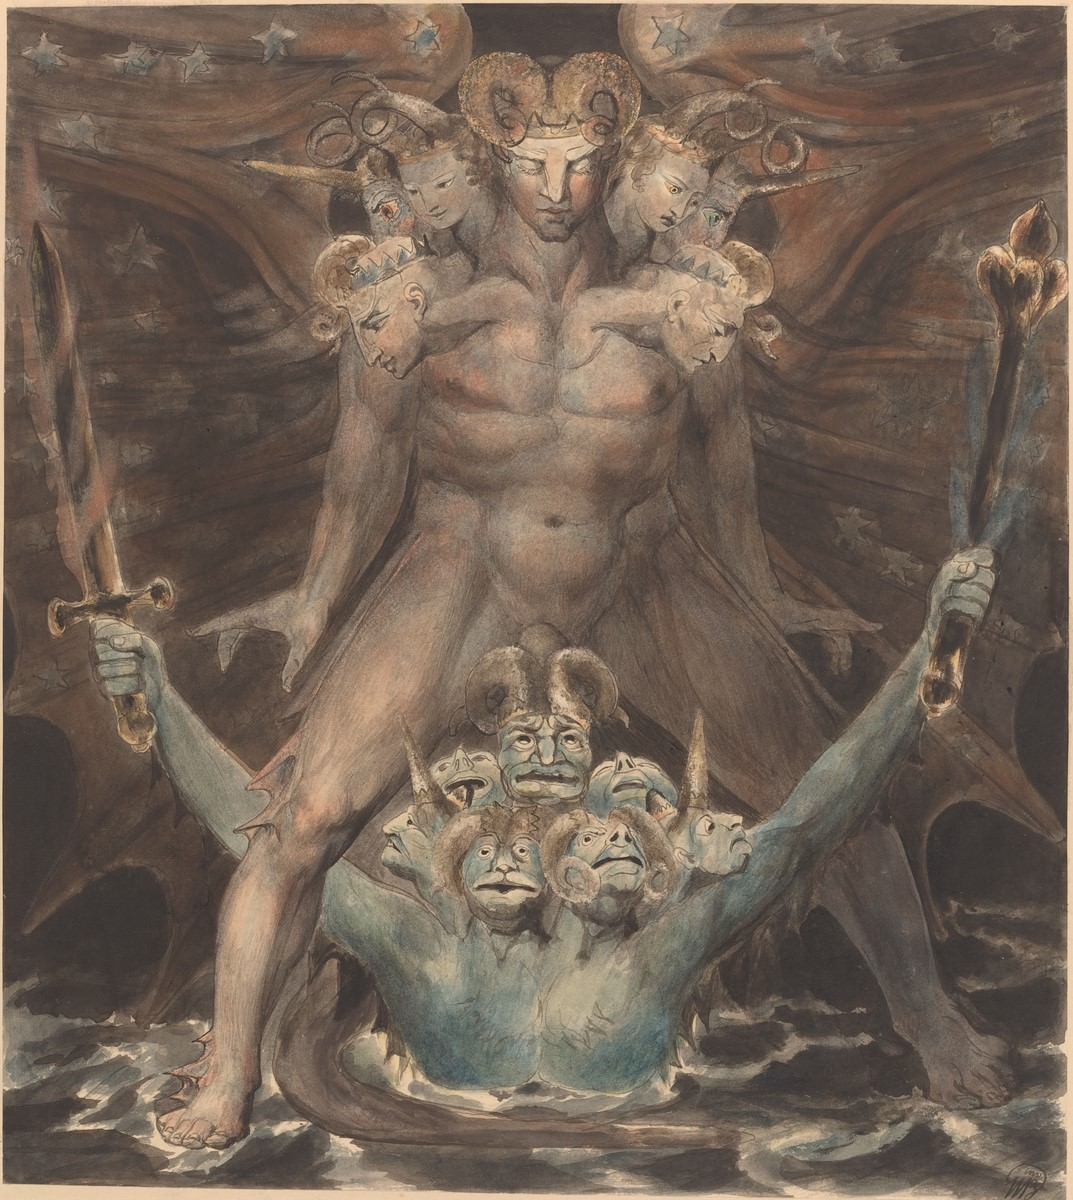 Le Grand Dragon Rouge et la Bête de la mer, 1805. William Blake. National Gallery of Art, Washington. collection Rosenwald.